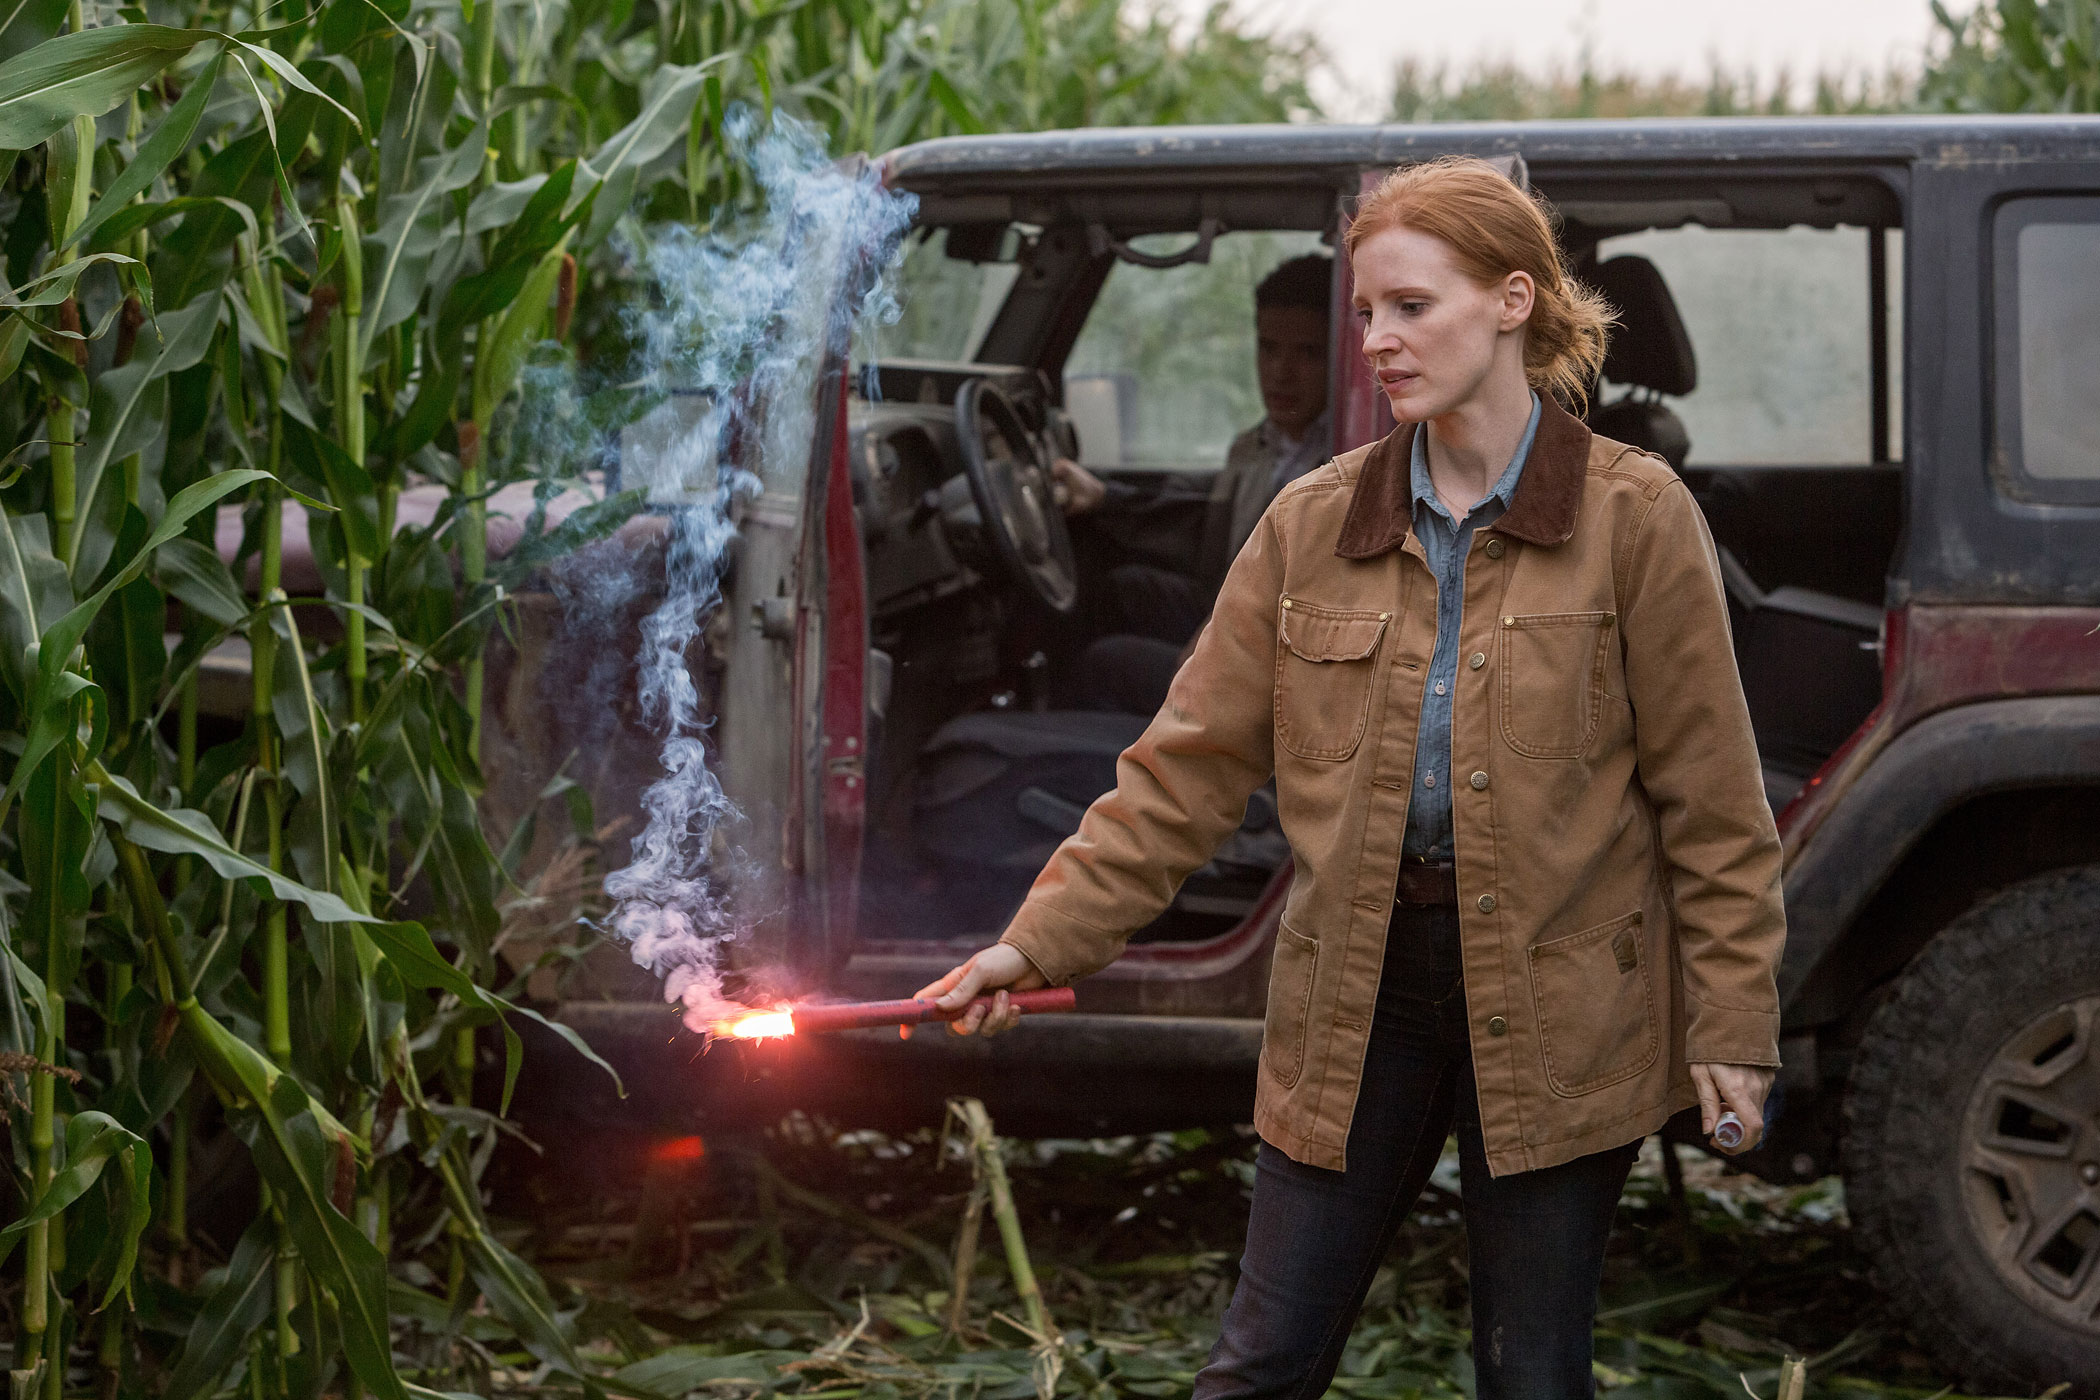 Jessica Chastain and Topher Grace in a scene from <i>Interstellar</i>.